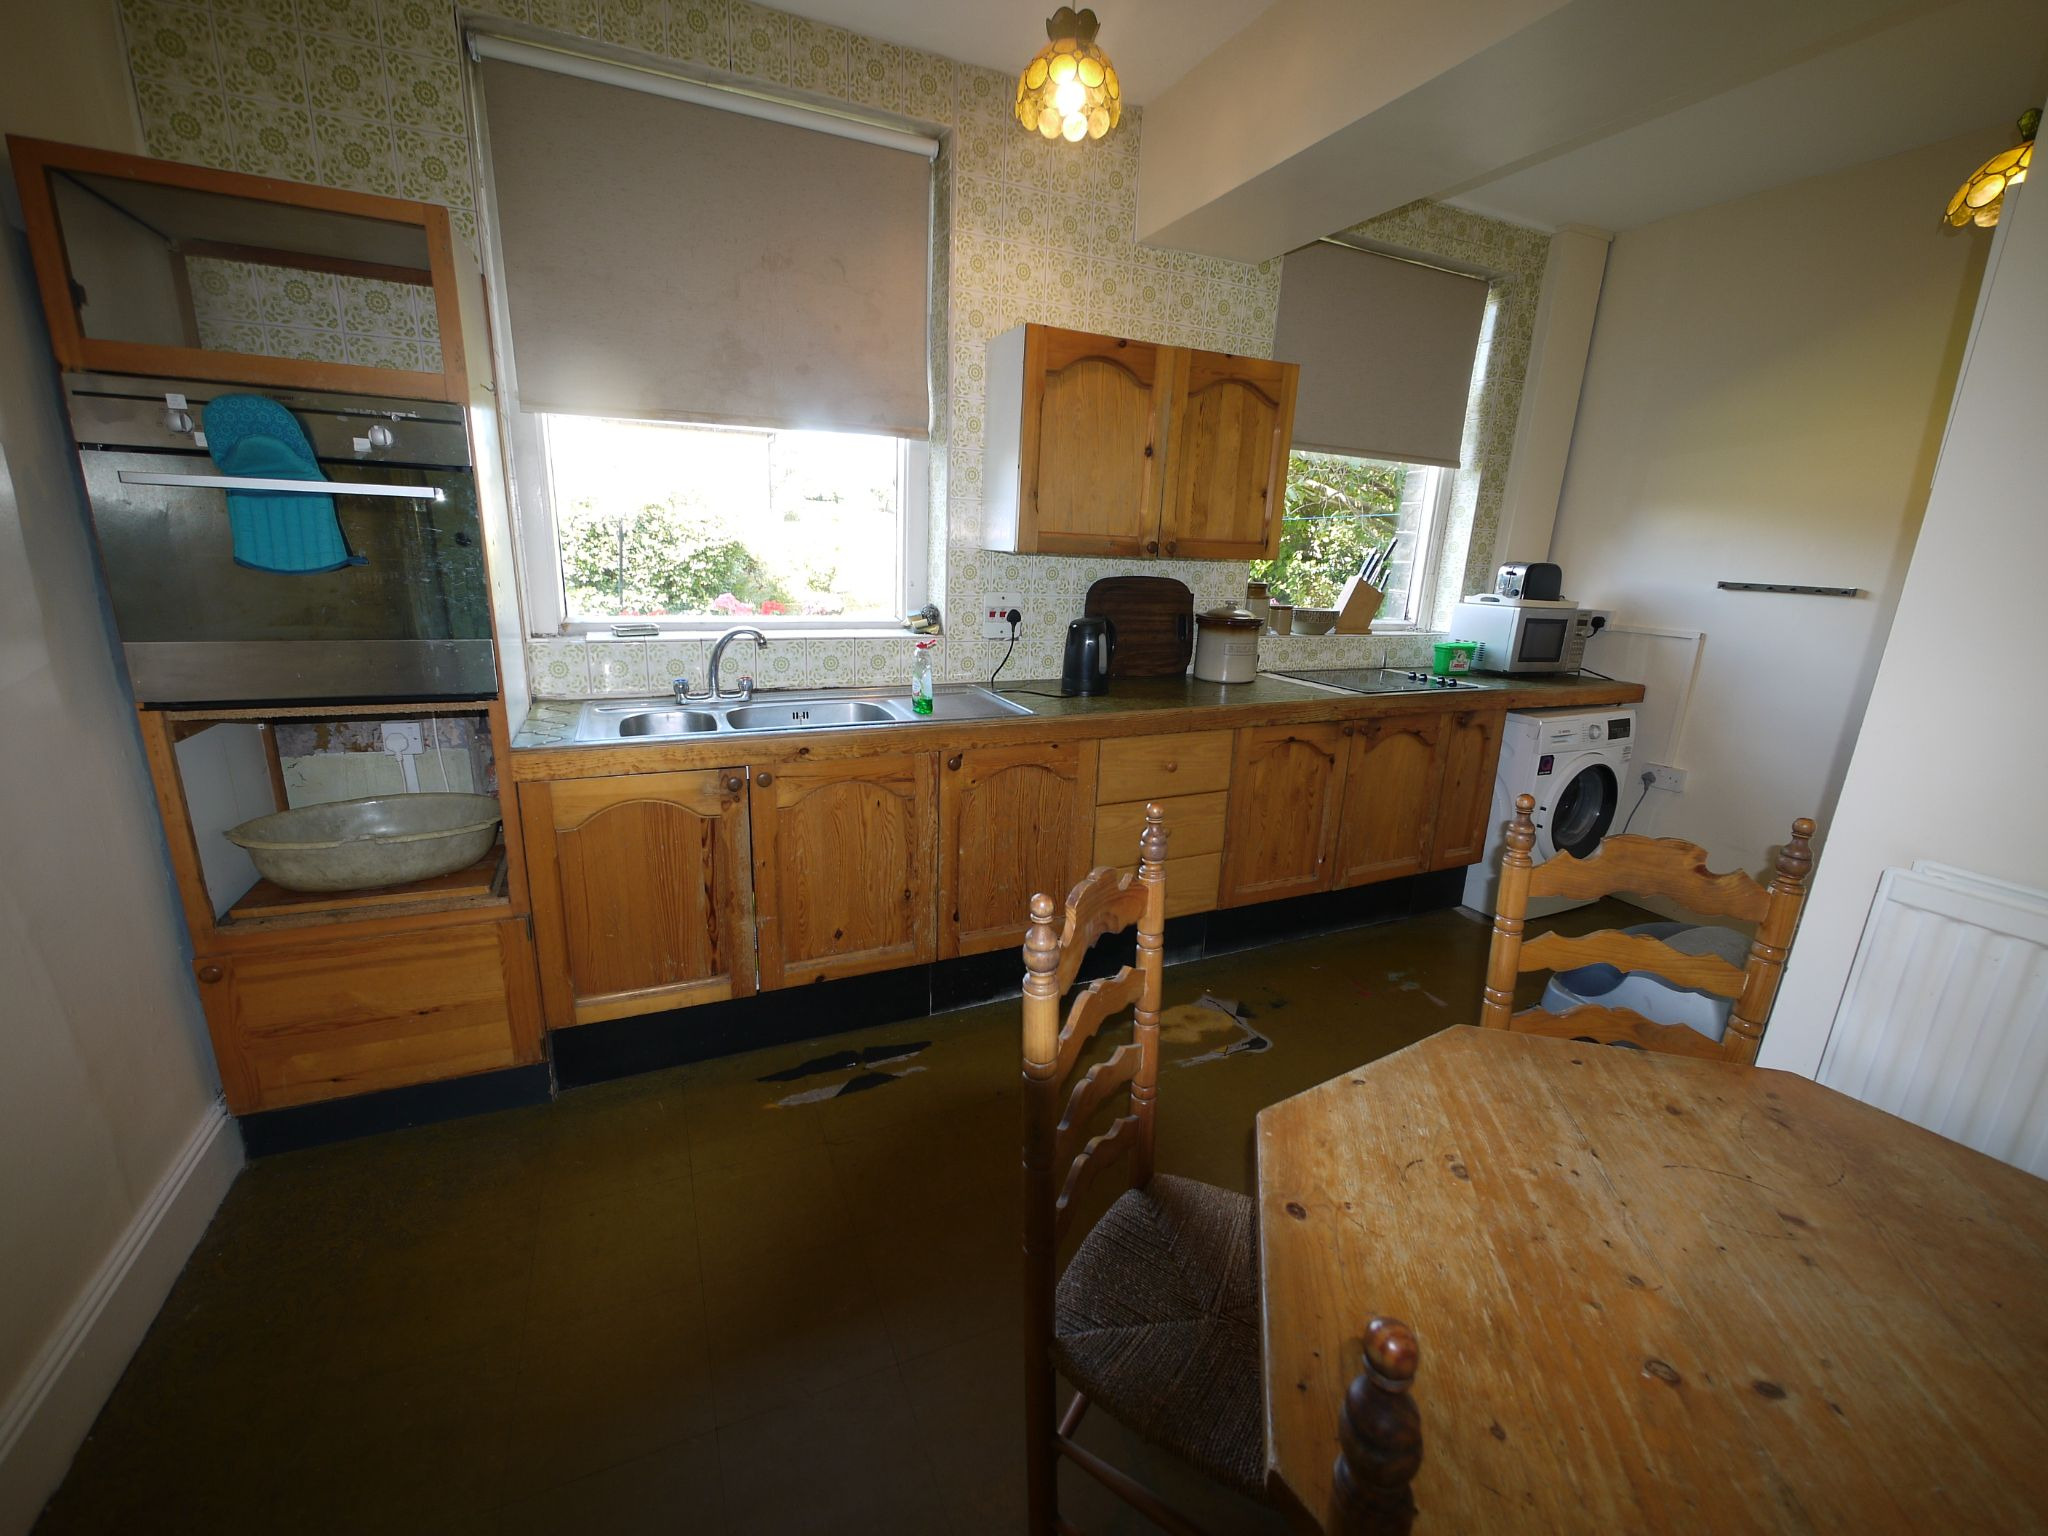 4 bedroom semi-detached house SSTC in Brighouse - Kitchen.